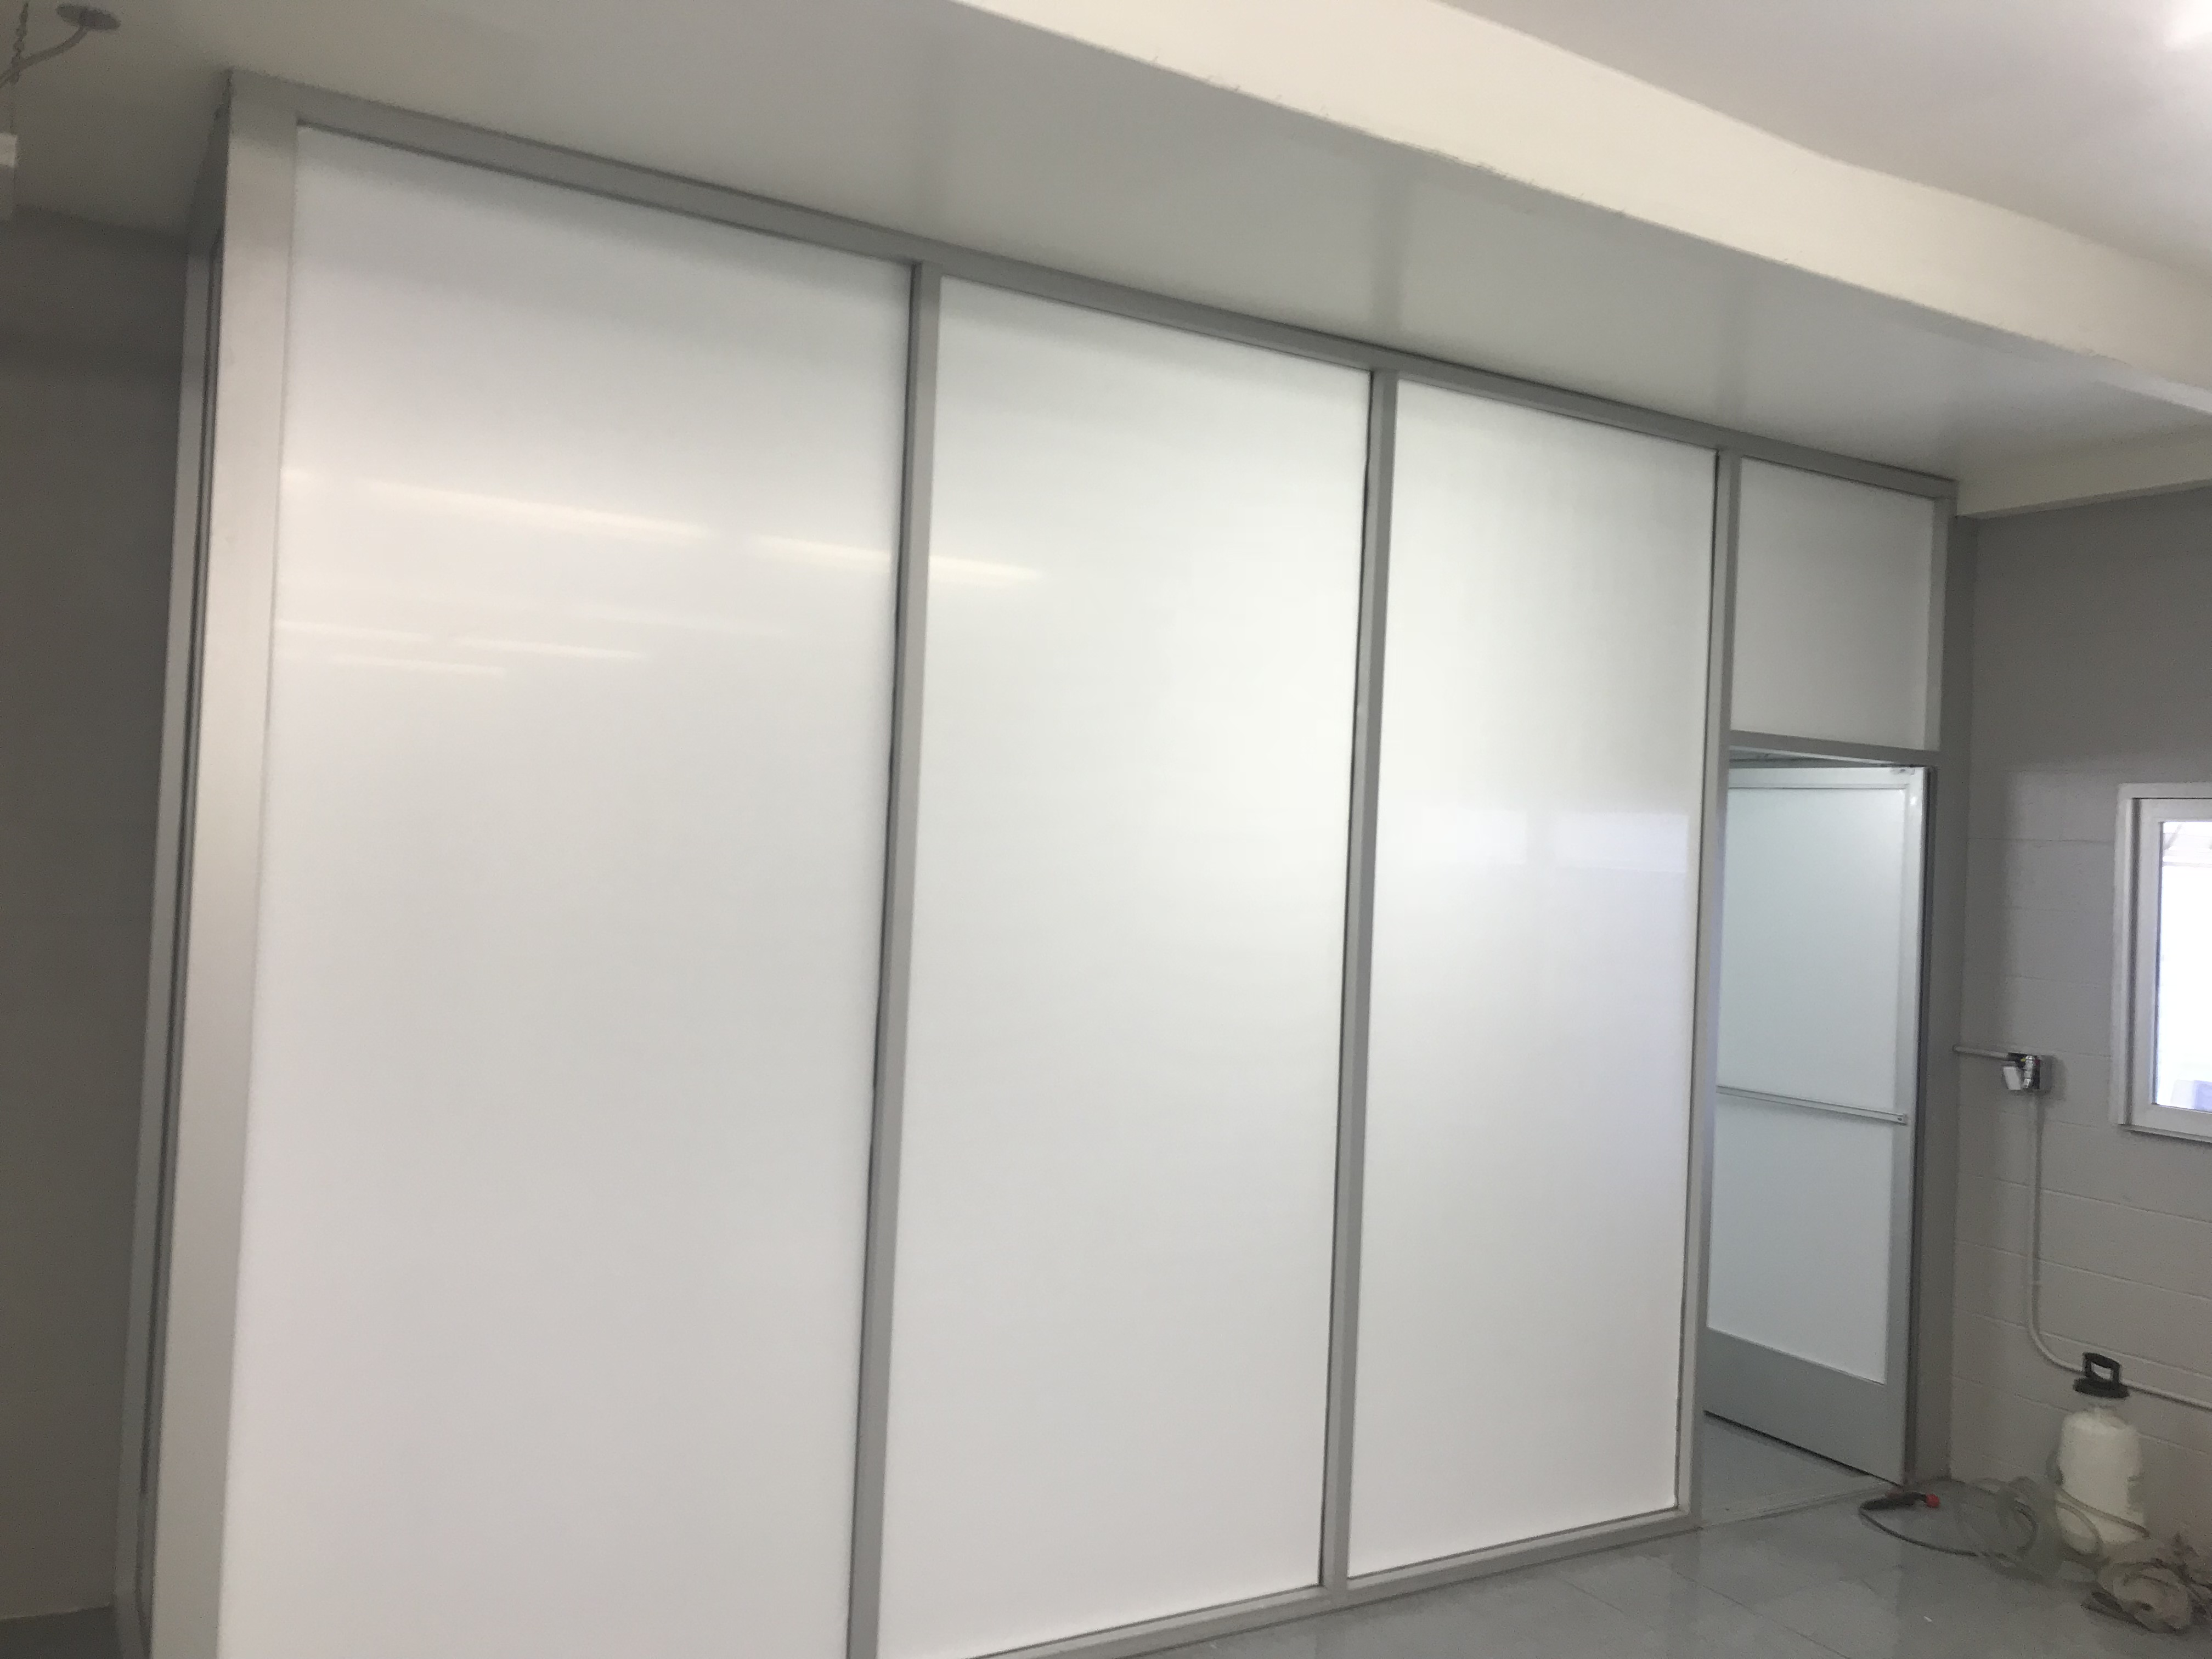 white frost window film, window tint, commercial window tinting, privacy window film, best window tint shop los angeles, 3m window film, crystalline window film, llumar window film